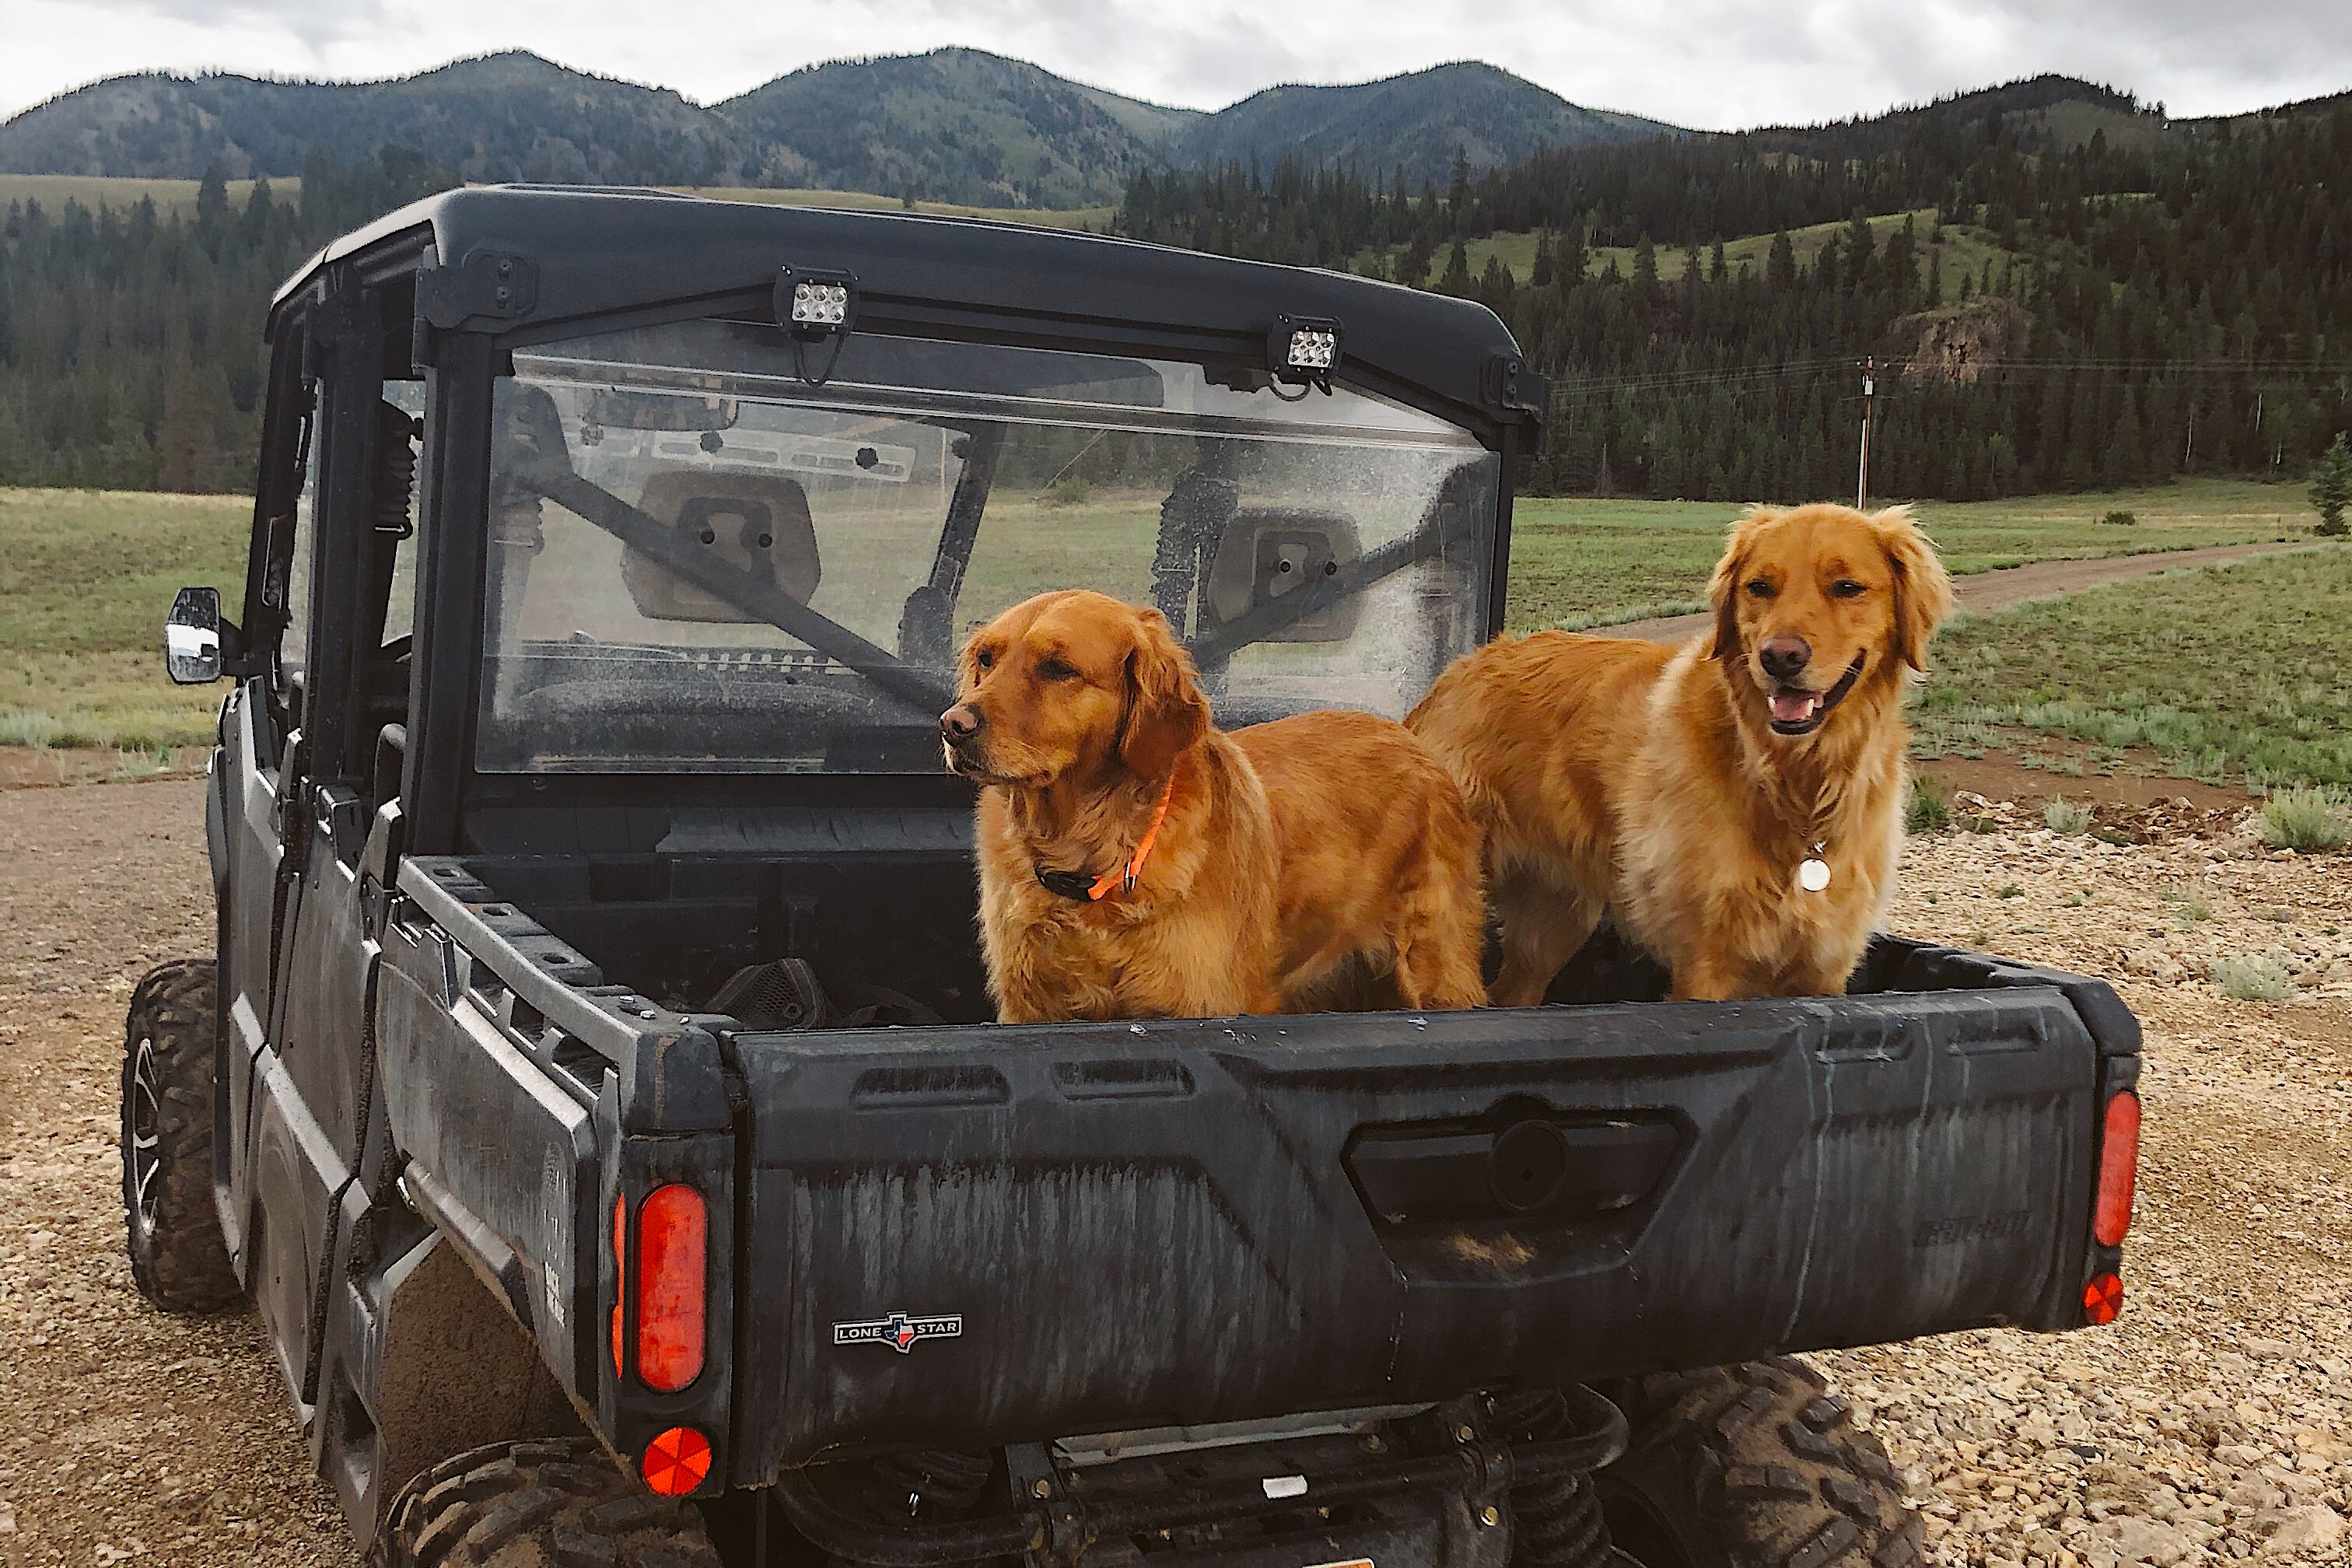 Two Red Retrievers dogs sitting on a Can-Am Defender cargo box